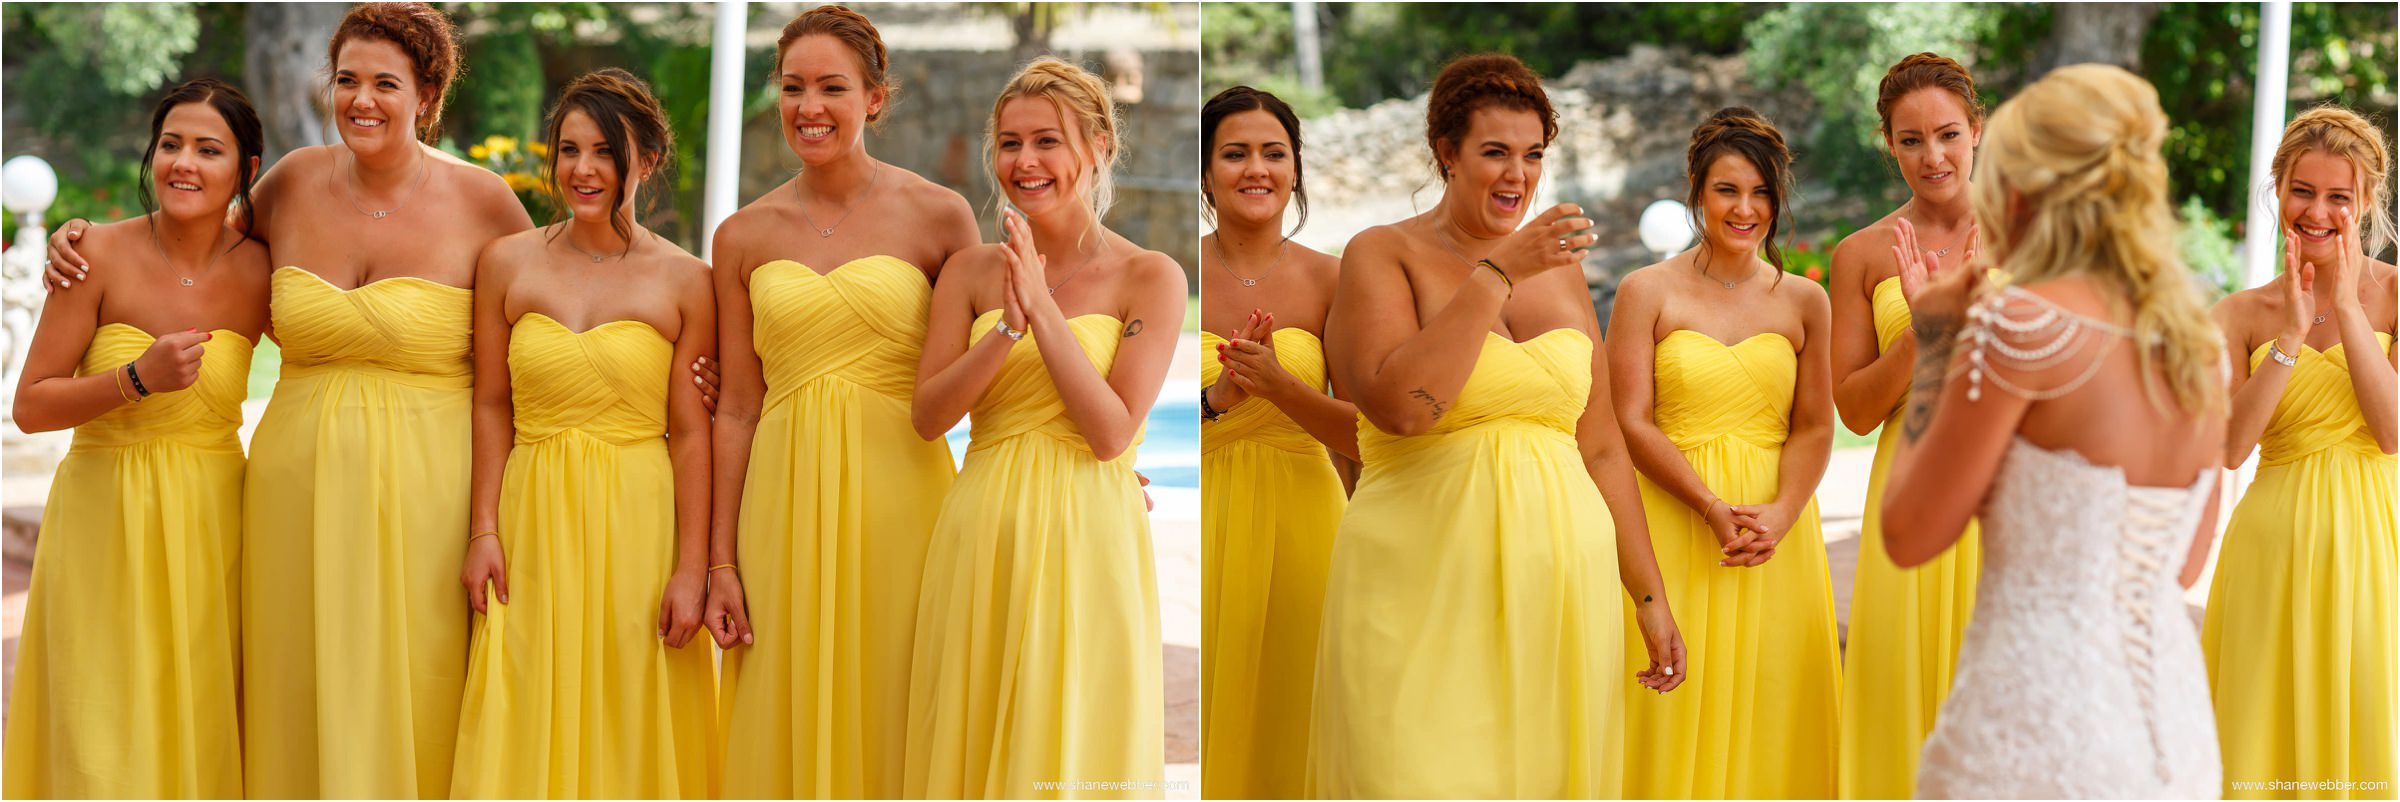 Bridesmaids first look wedding photo